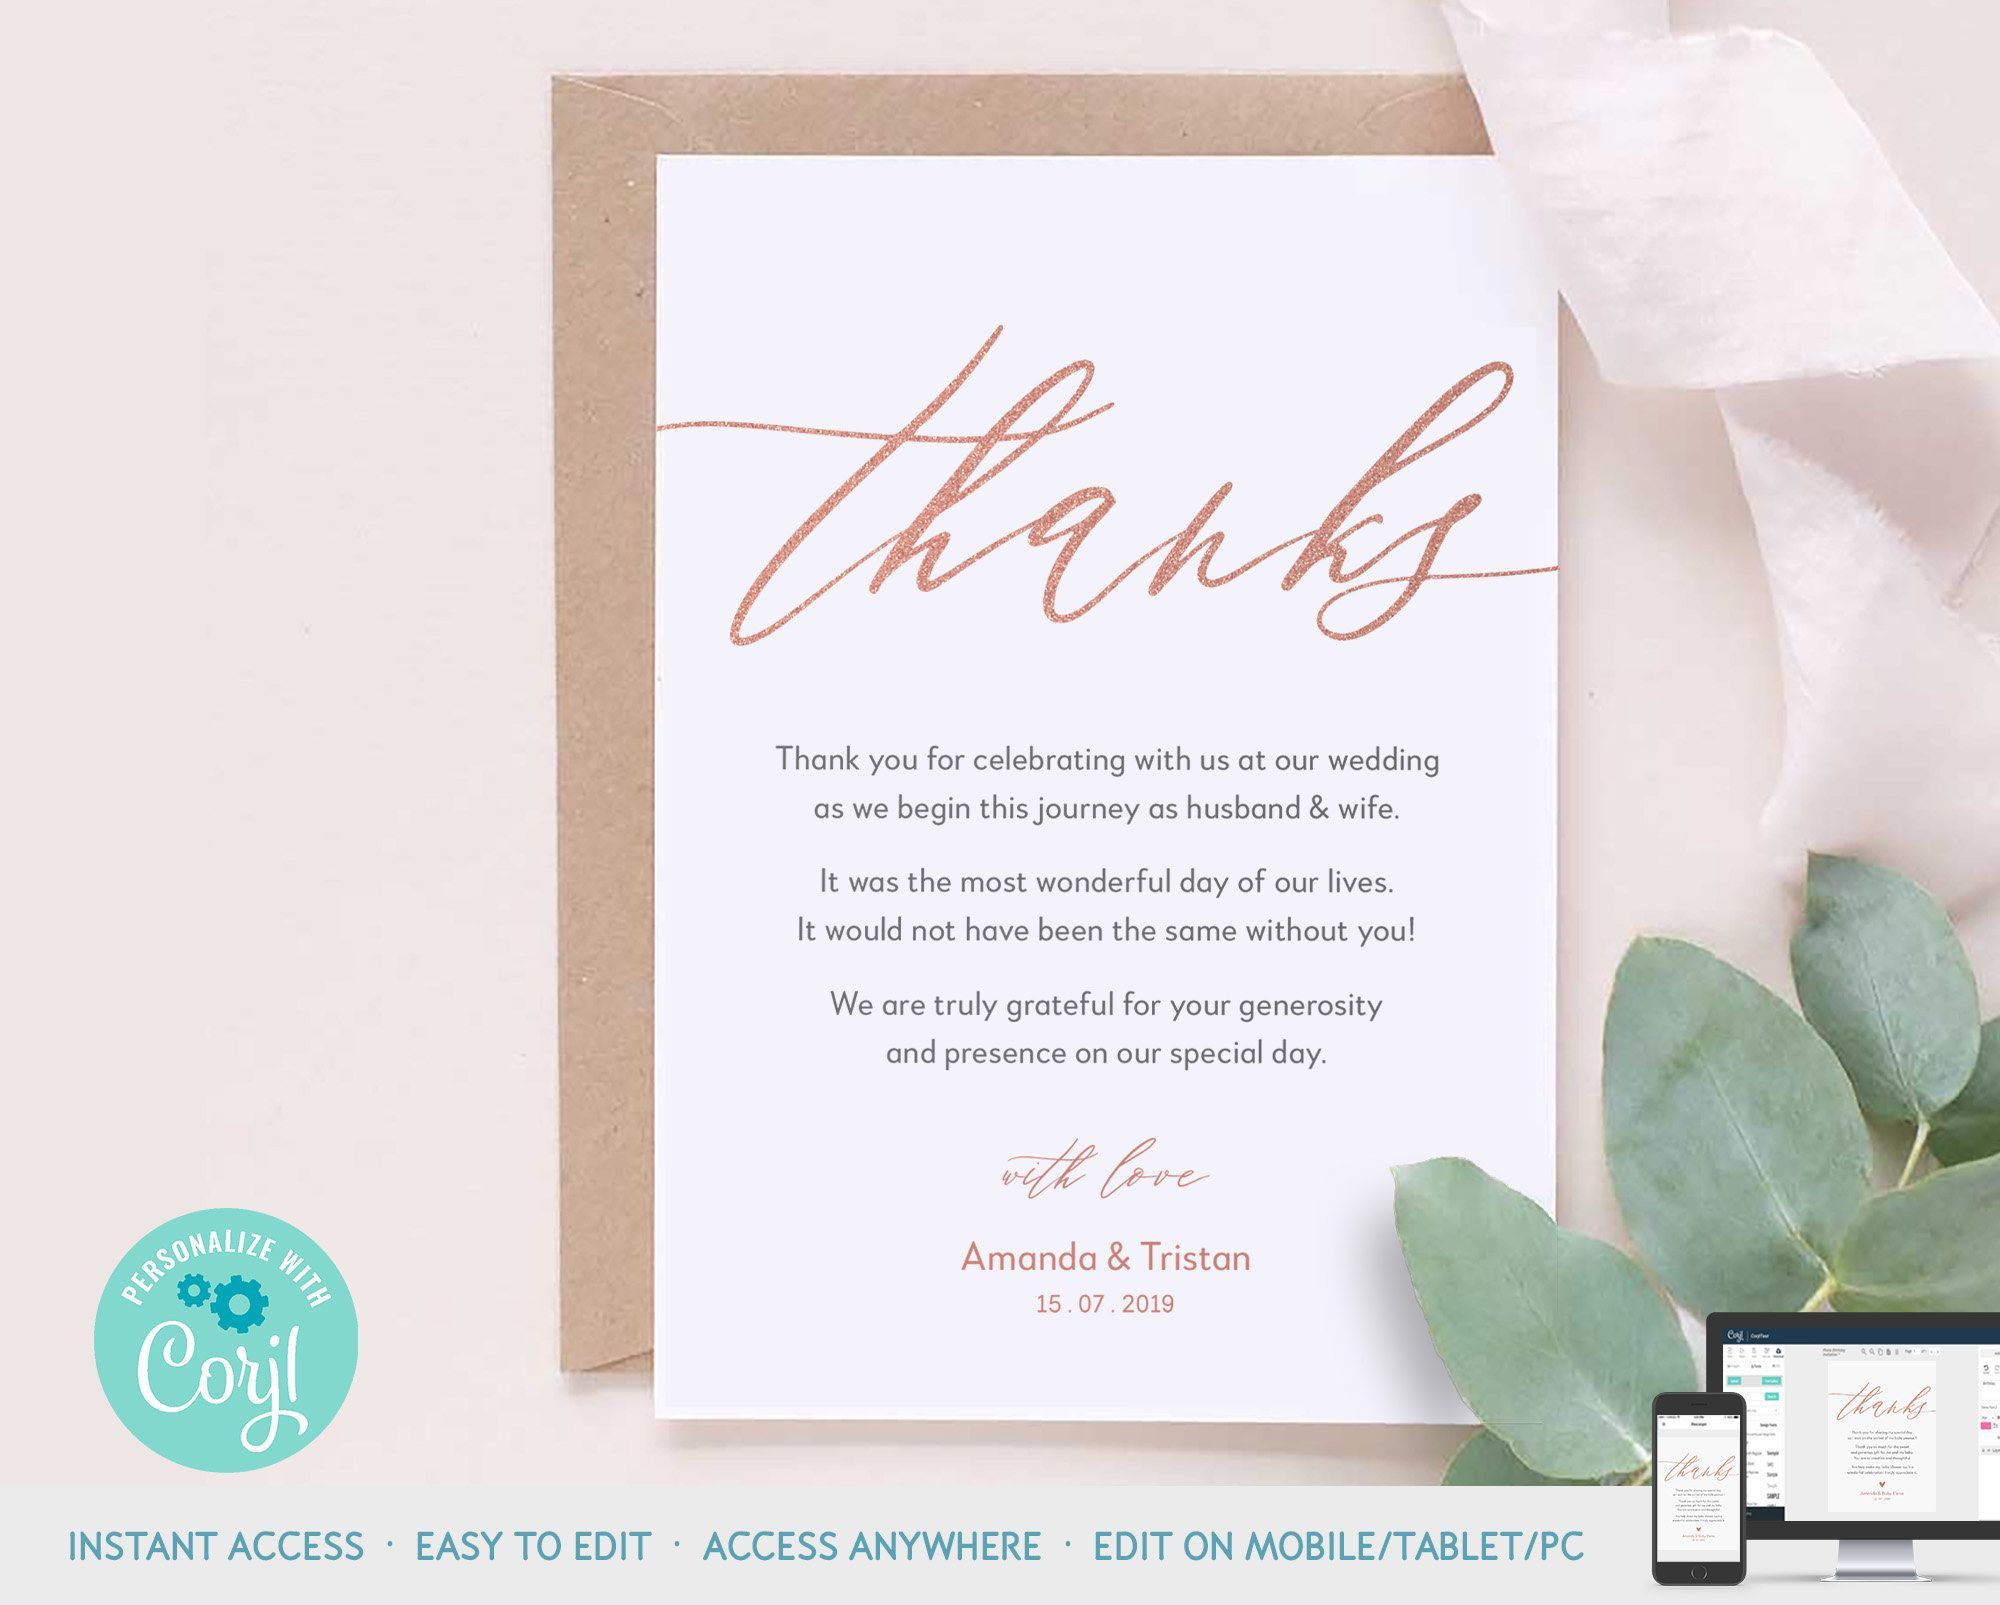 003 Top Wedding Thank You Note Template Design  Money Sample Wording Bridal Shower GiftFull